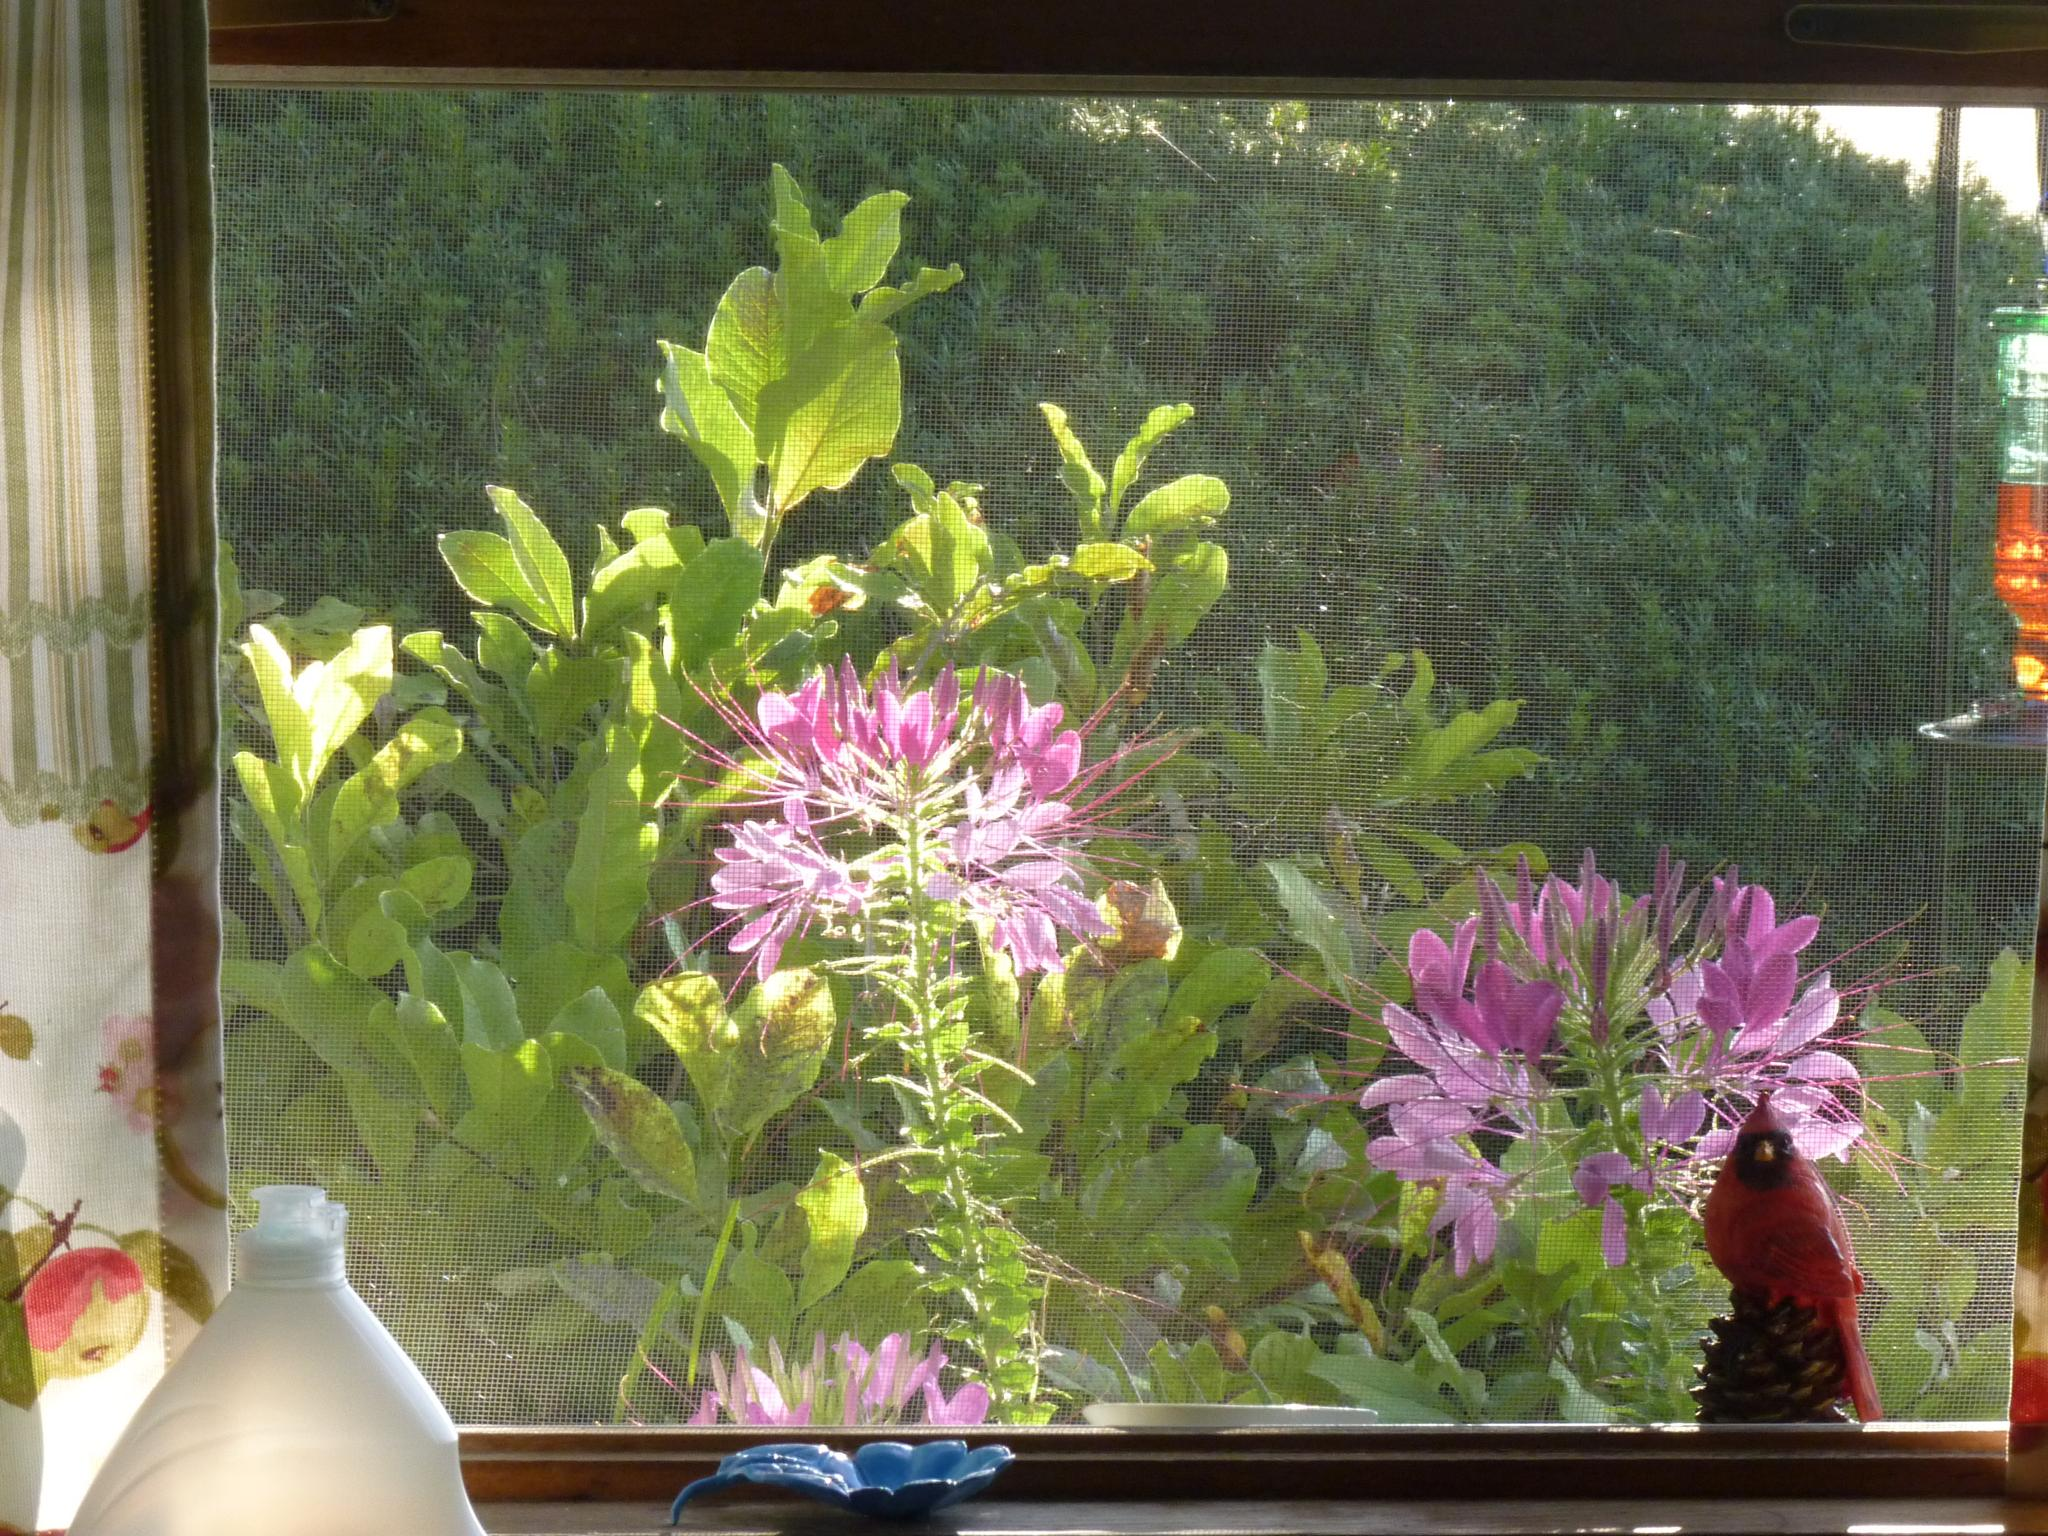 Where Cleome Lives by jeanne.winstead